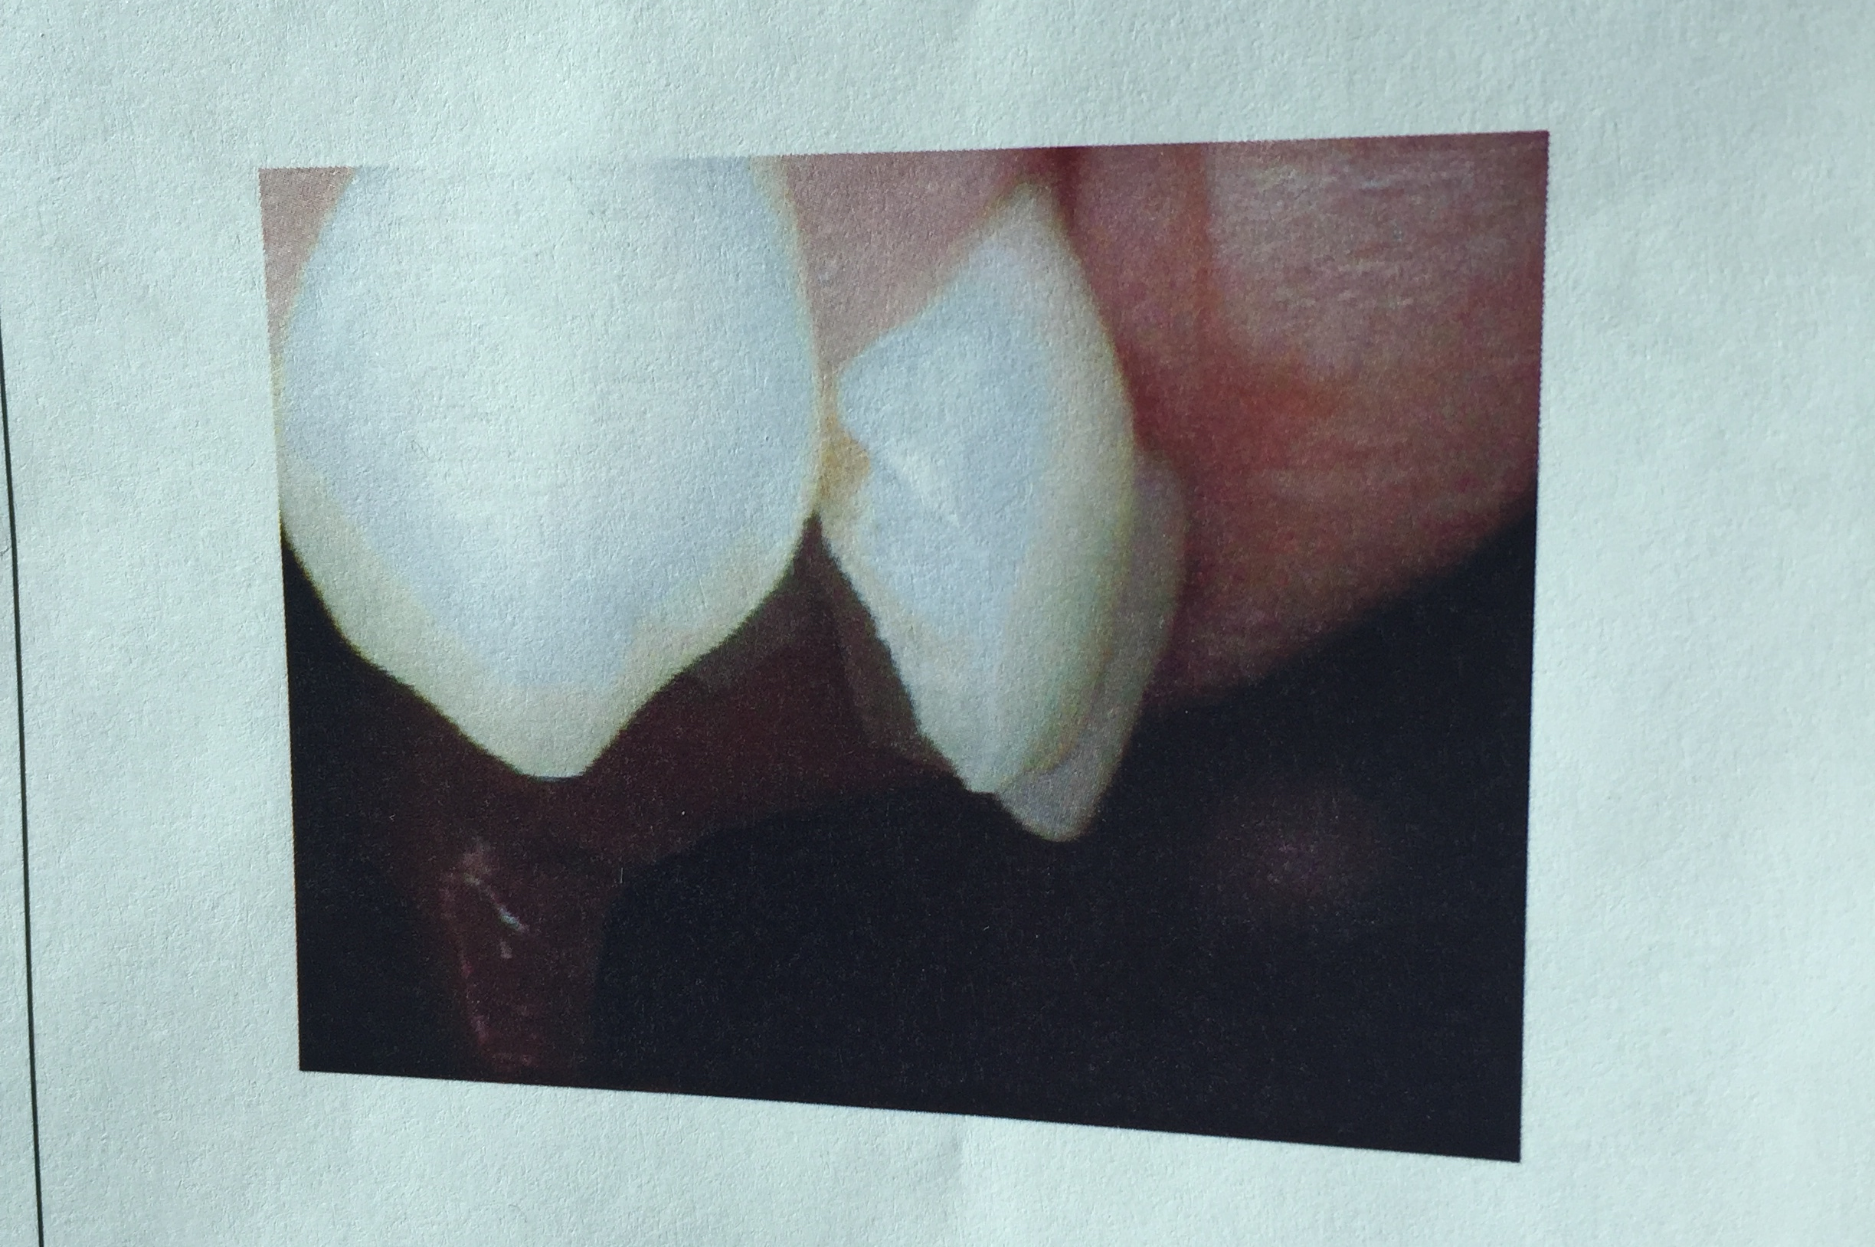 The dental damage of a piolet to the mouth.